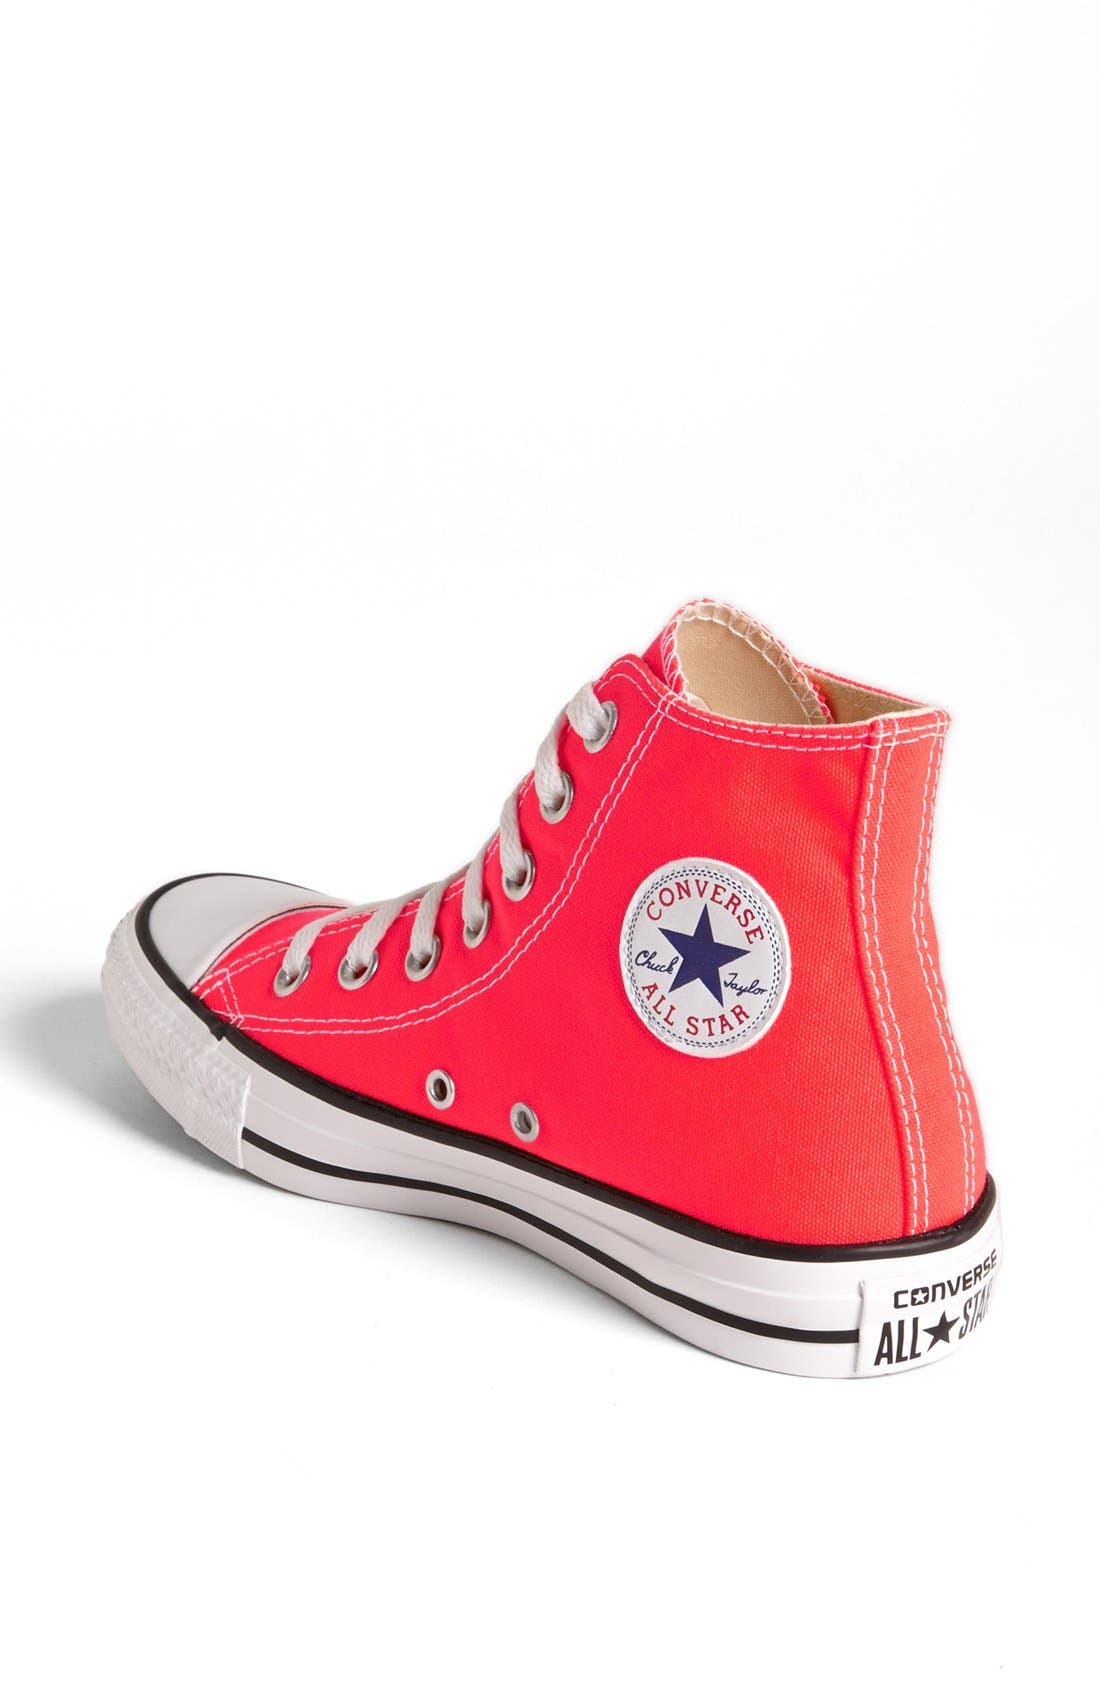 Alternate Image 2  - Converse Chuck Taylor® All Star® 'Fiery Coral' High Top Sneaker (Women)